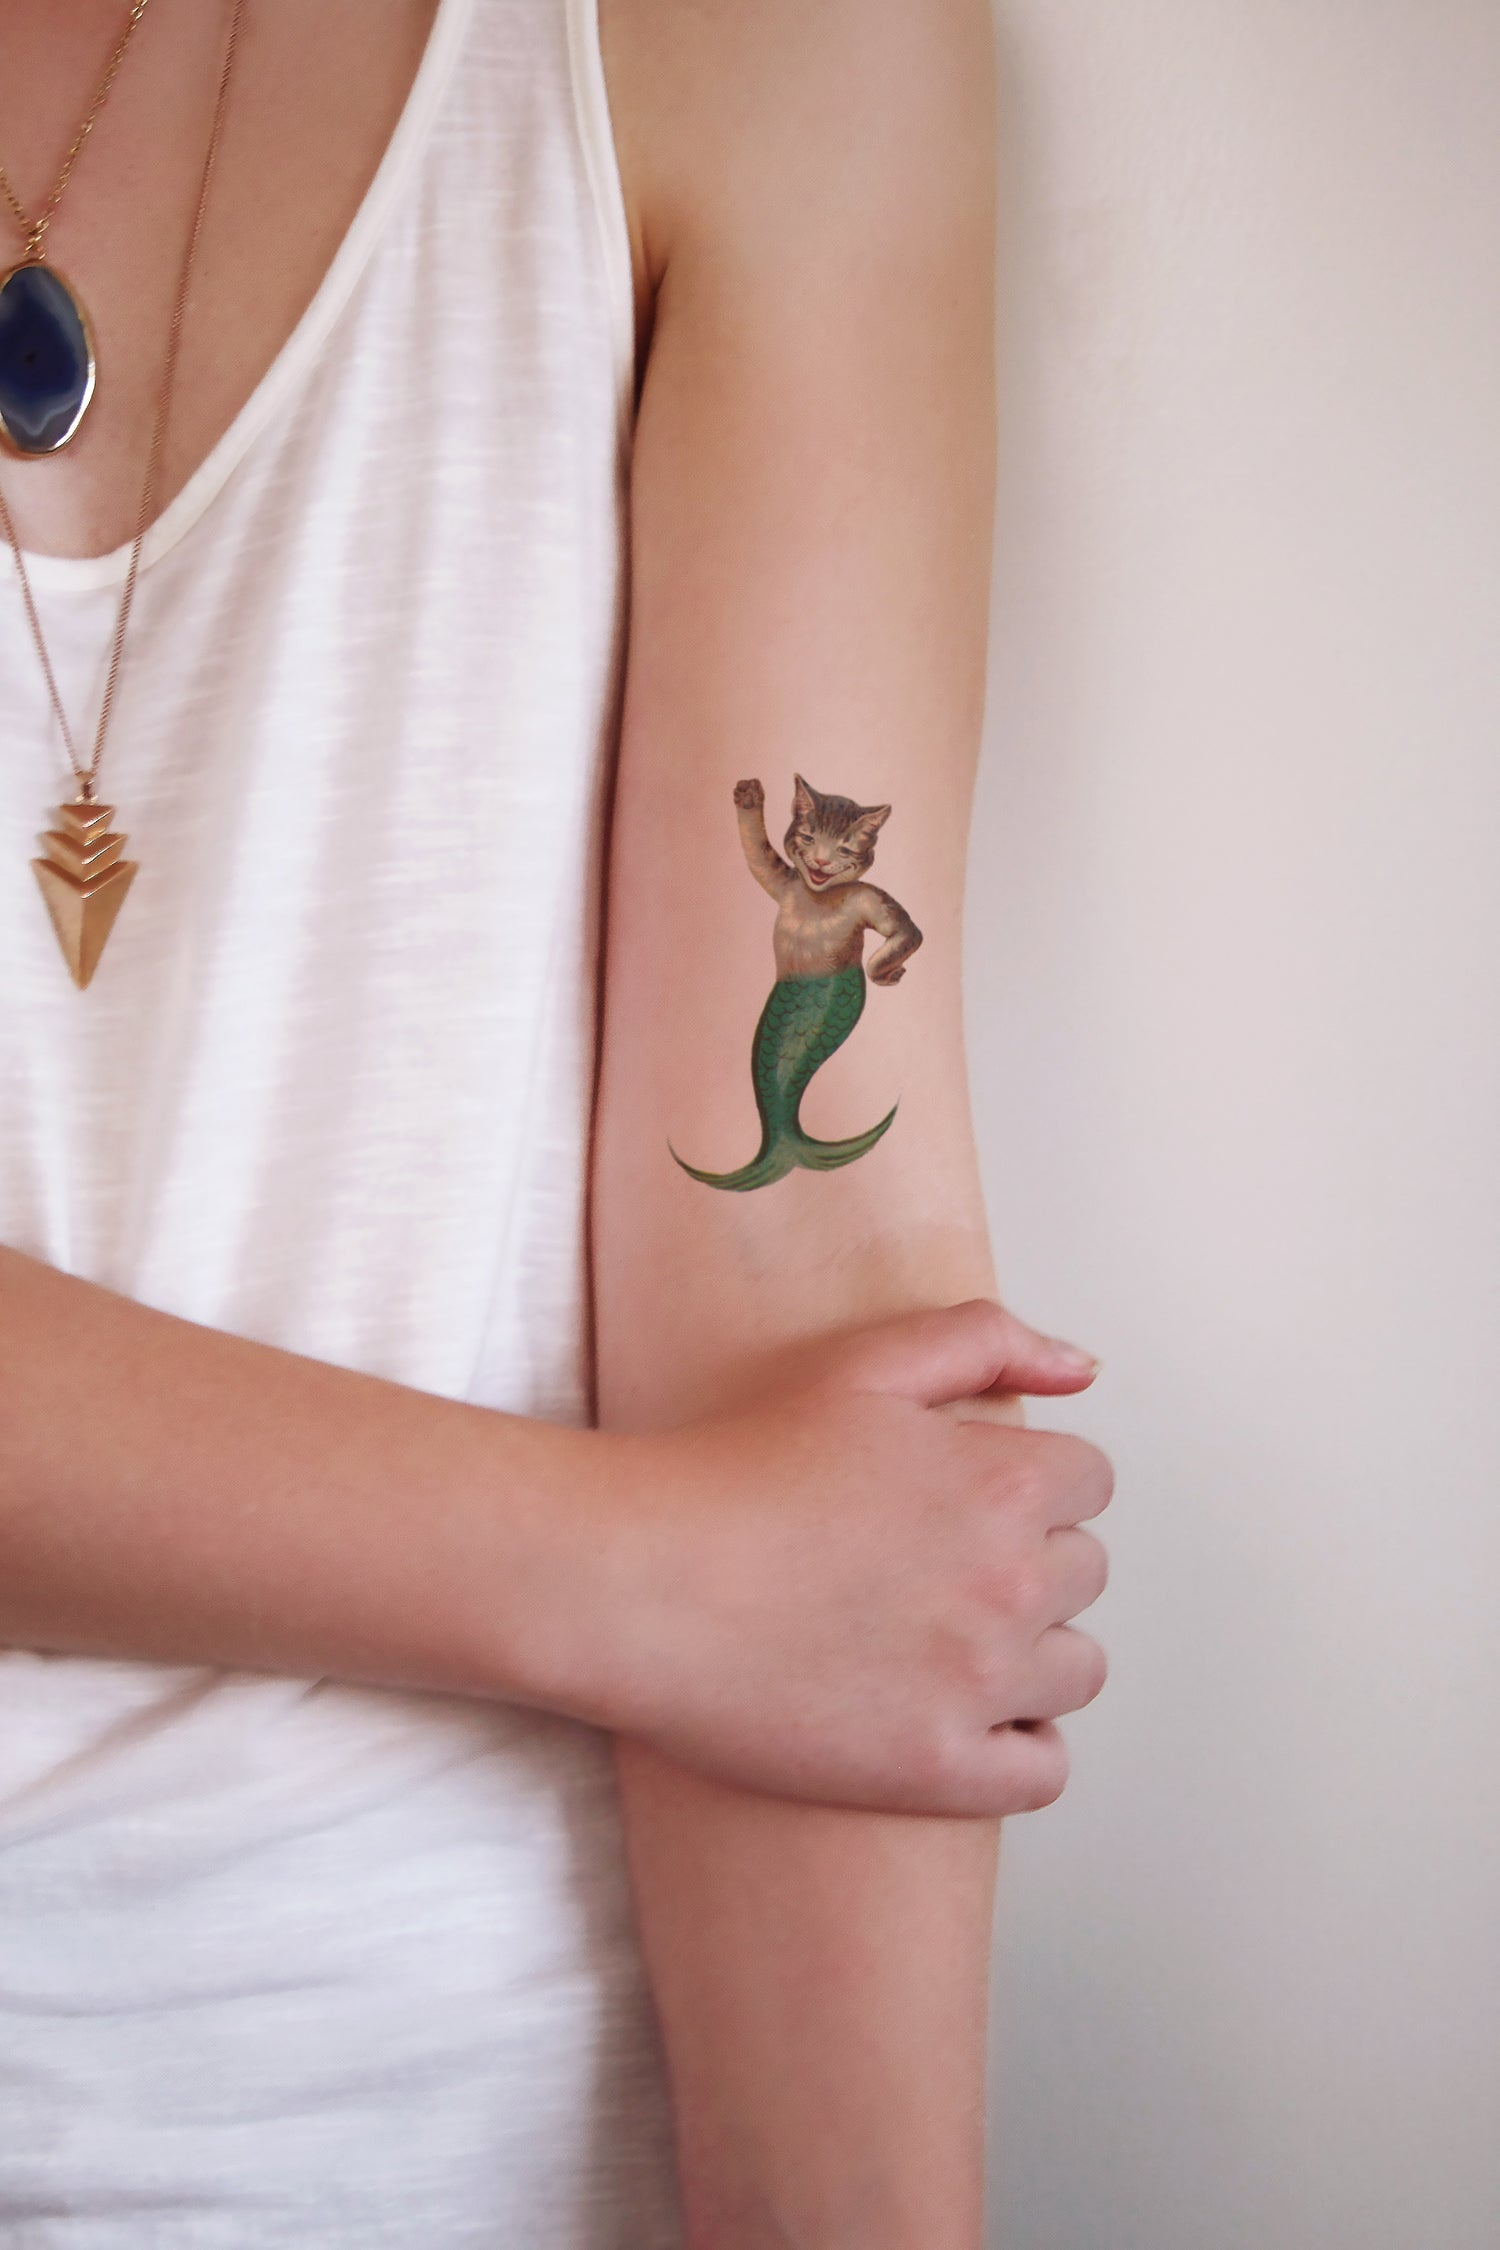 Cat Mermaid Temporary Tattoo